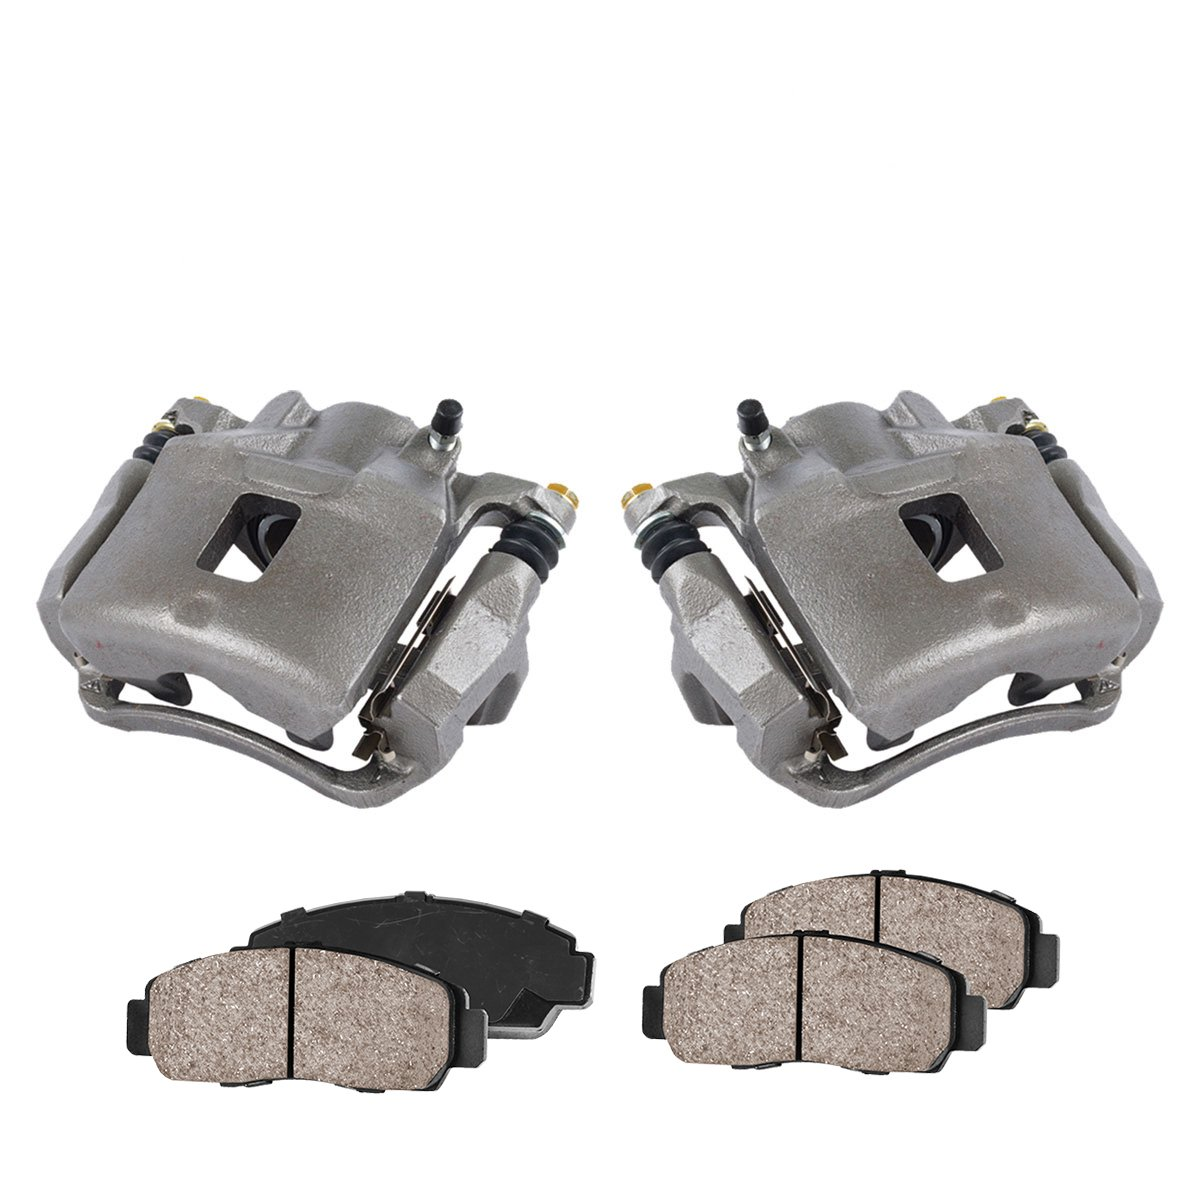 COEK00615 [2] FRONT Premium Loaded OE Caliper Assembly Set + Quiet Low Dust Ceramic Brake Pads Callahan Brake Parts